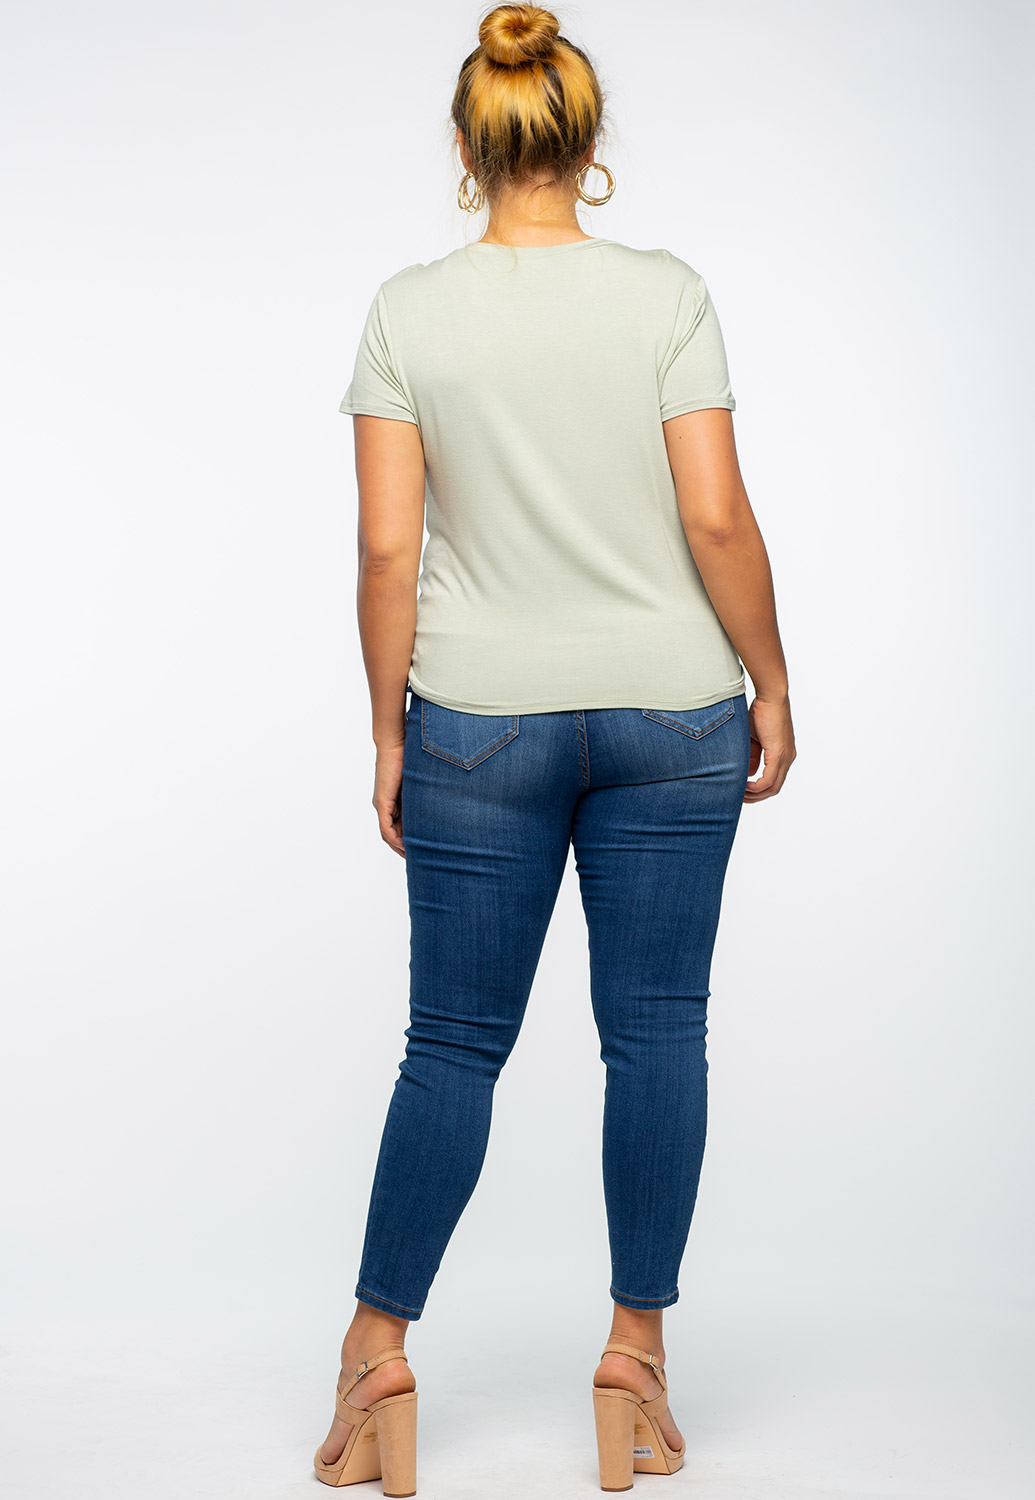 Knotted Casual Top